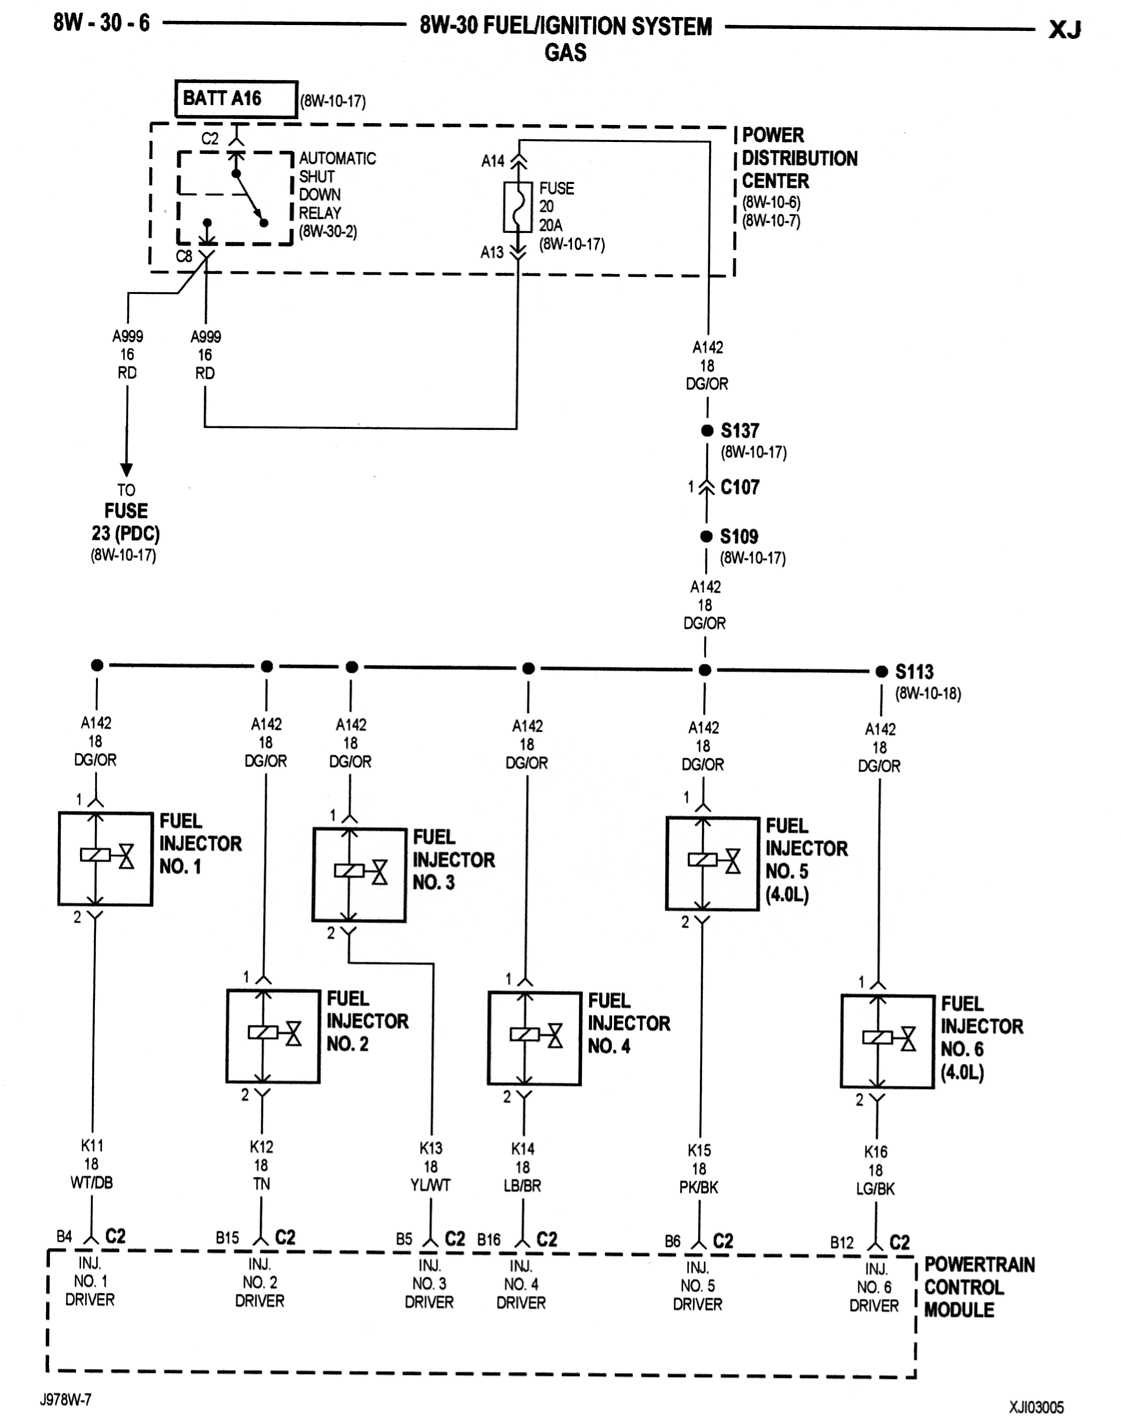 Obd2 Wiring Harness Diagram To Civicobd1